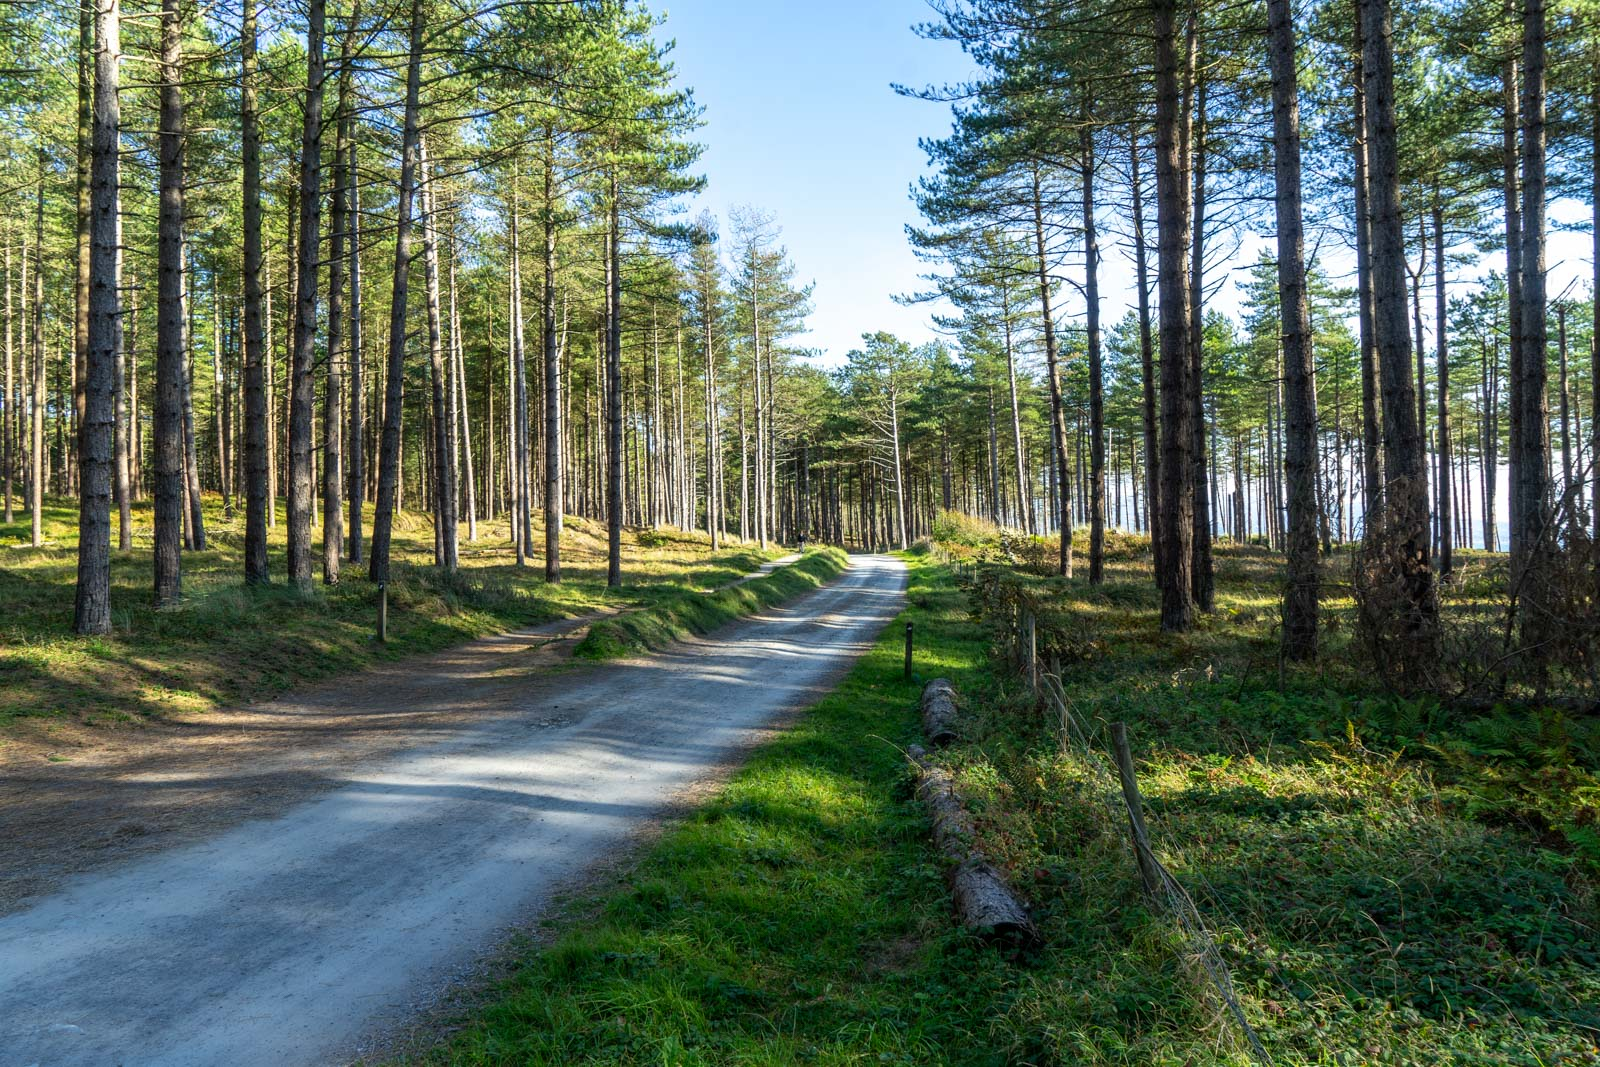 Newborough Forest in Wales